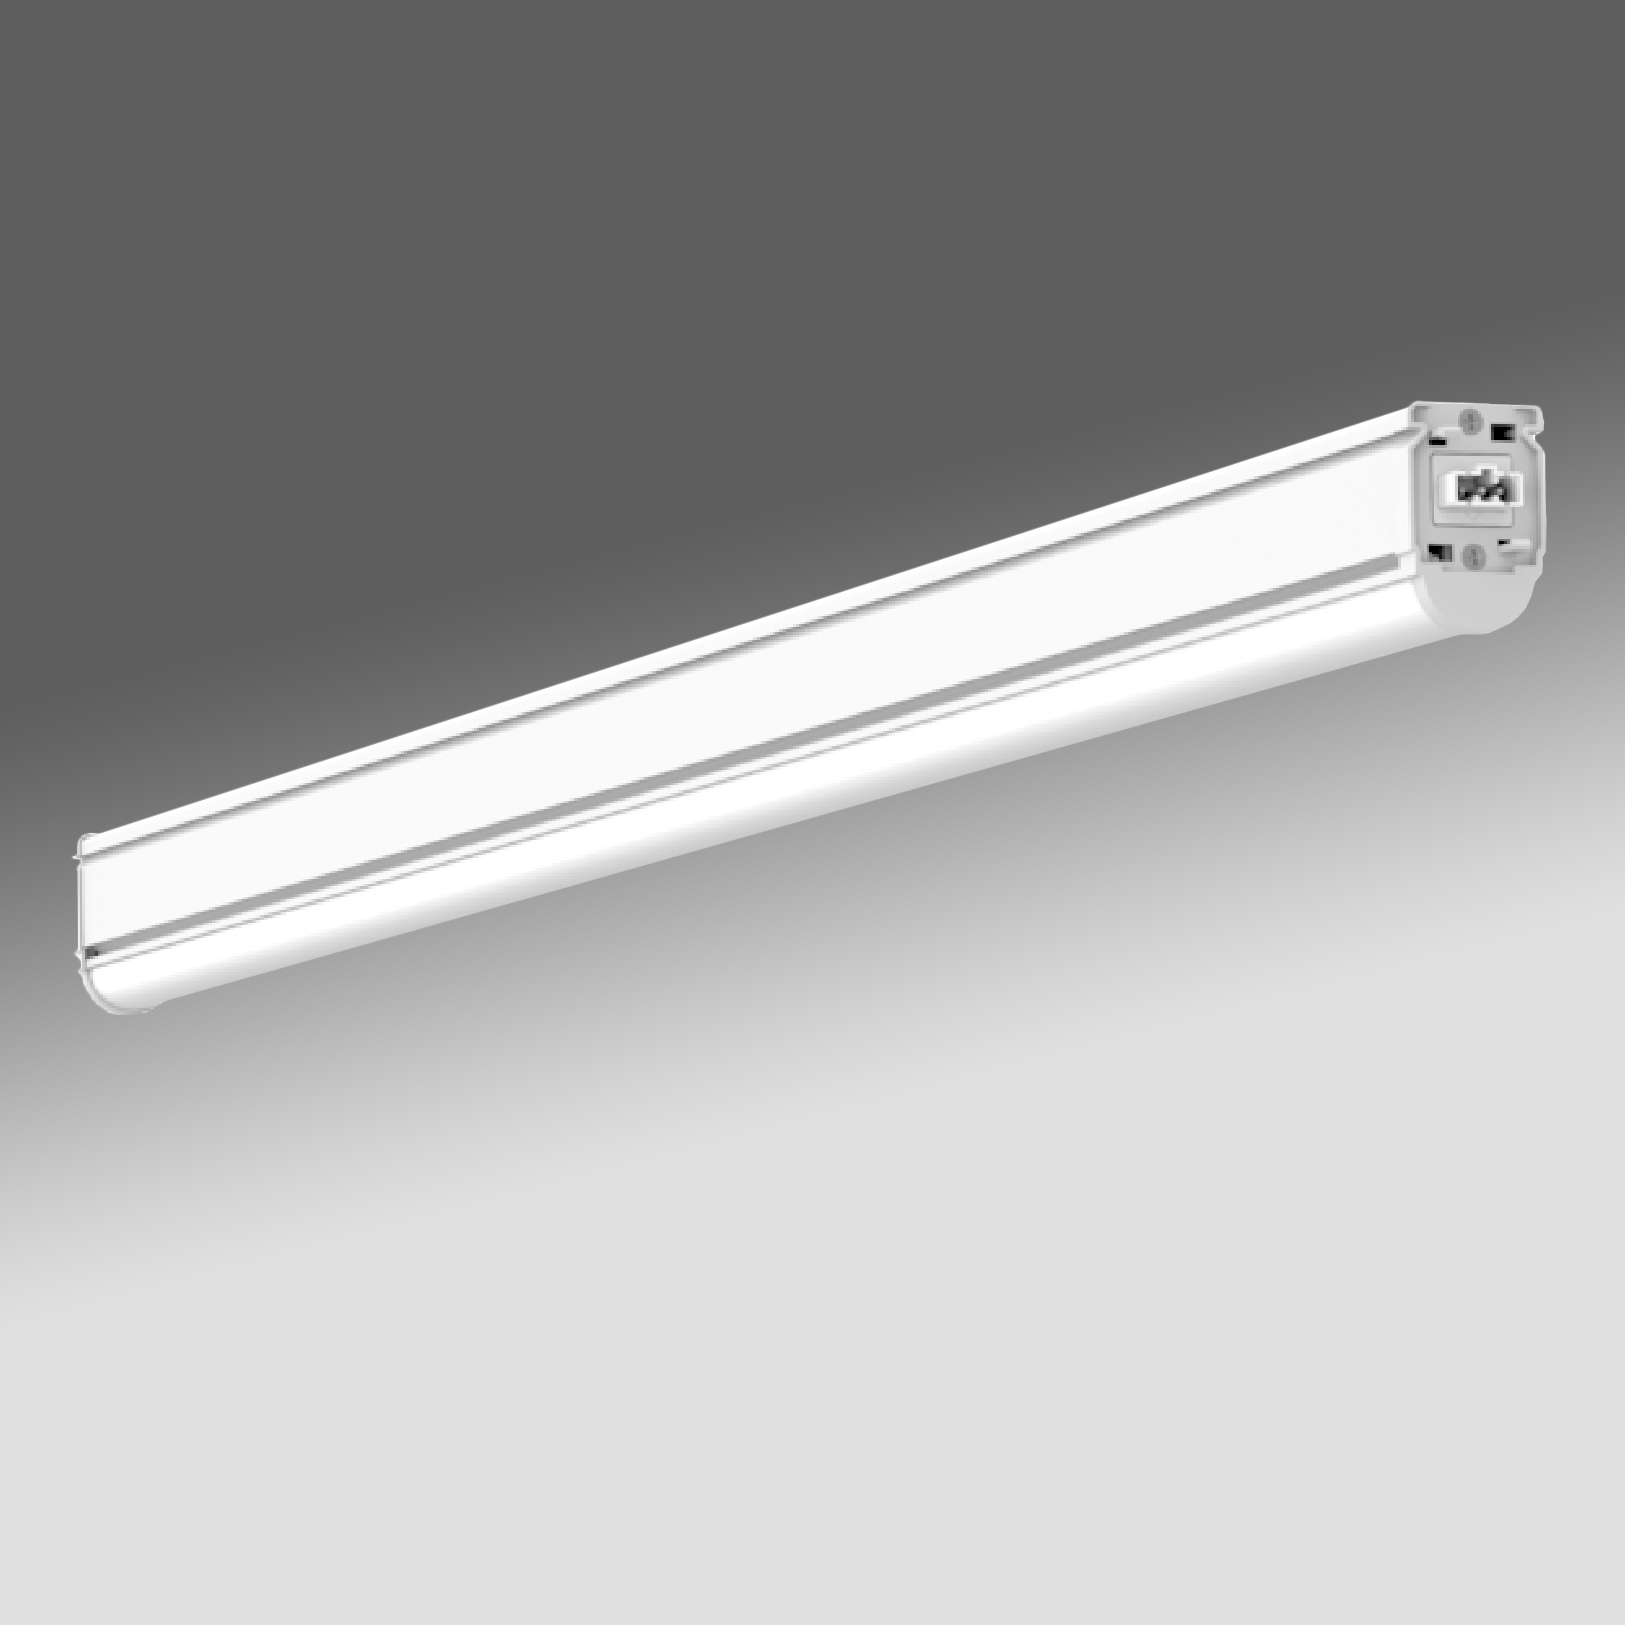 1 Stk SIMPLE LINE LED 1012 32W 3550lm/830 EVG IP20 weiß LIG8100001